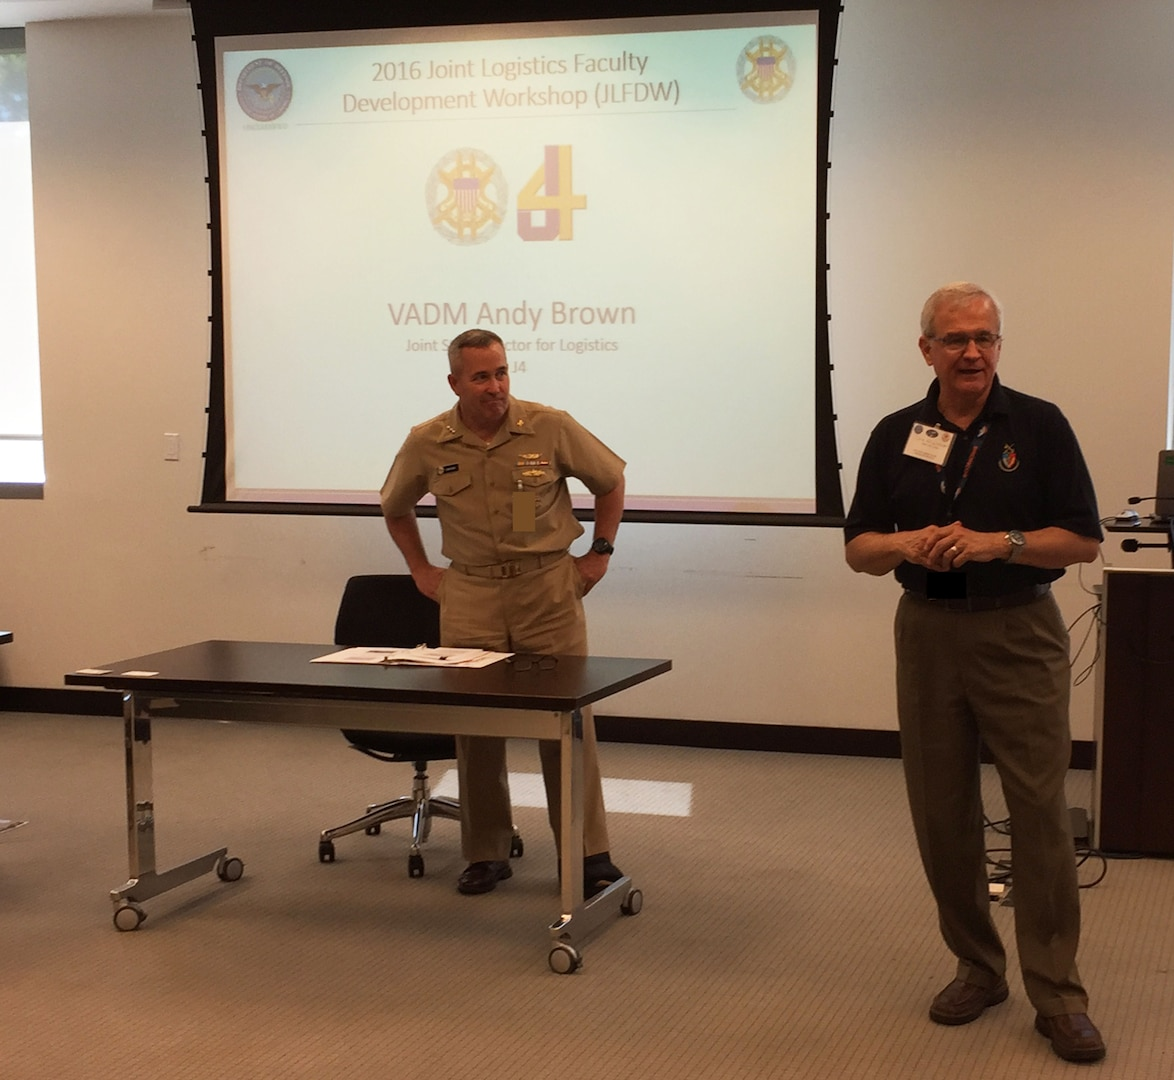 Navy Vice Admiral Andy Brown, Joint Staff Director for Logistics (left), is introduced by Lt Gen (Ret) Chris Kelly, Director of the Center for Joint & Strategic Logistics, prior to offering his insights and guidance to over 30 faculty and logistics staff members in attendance for the 2016 Joint Logistics Faculty Development Workshop.